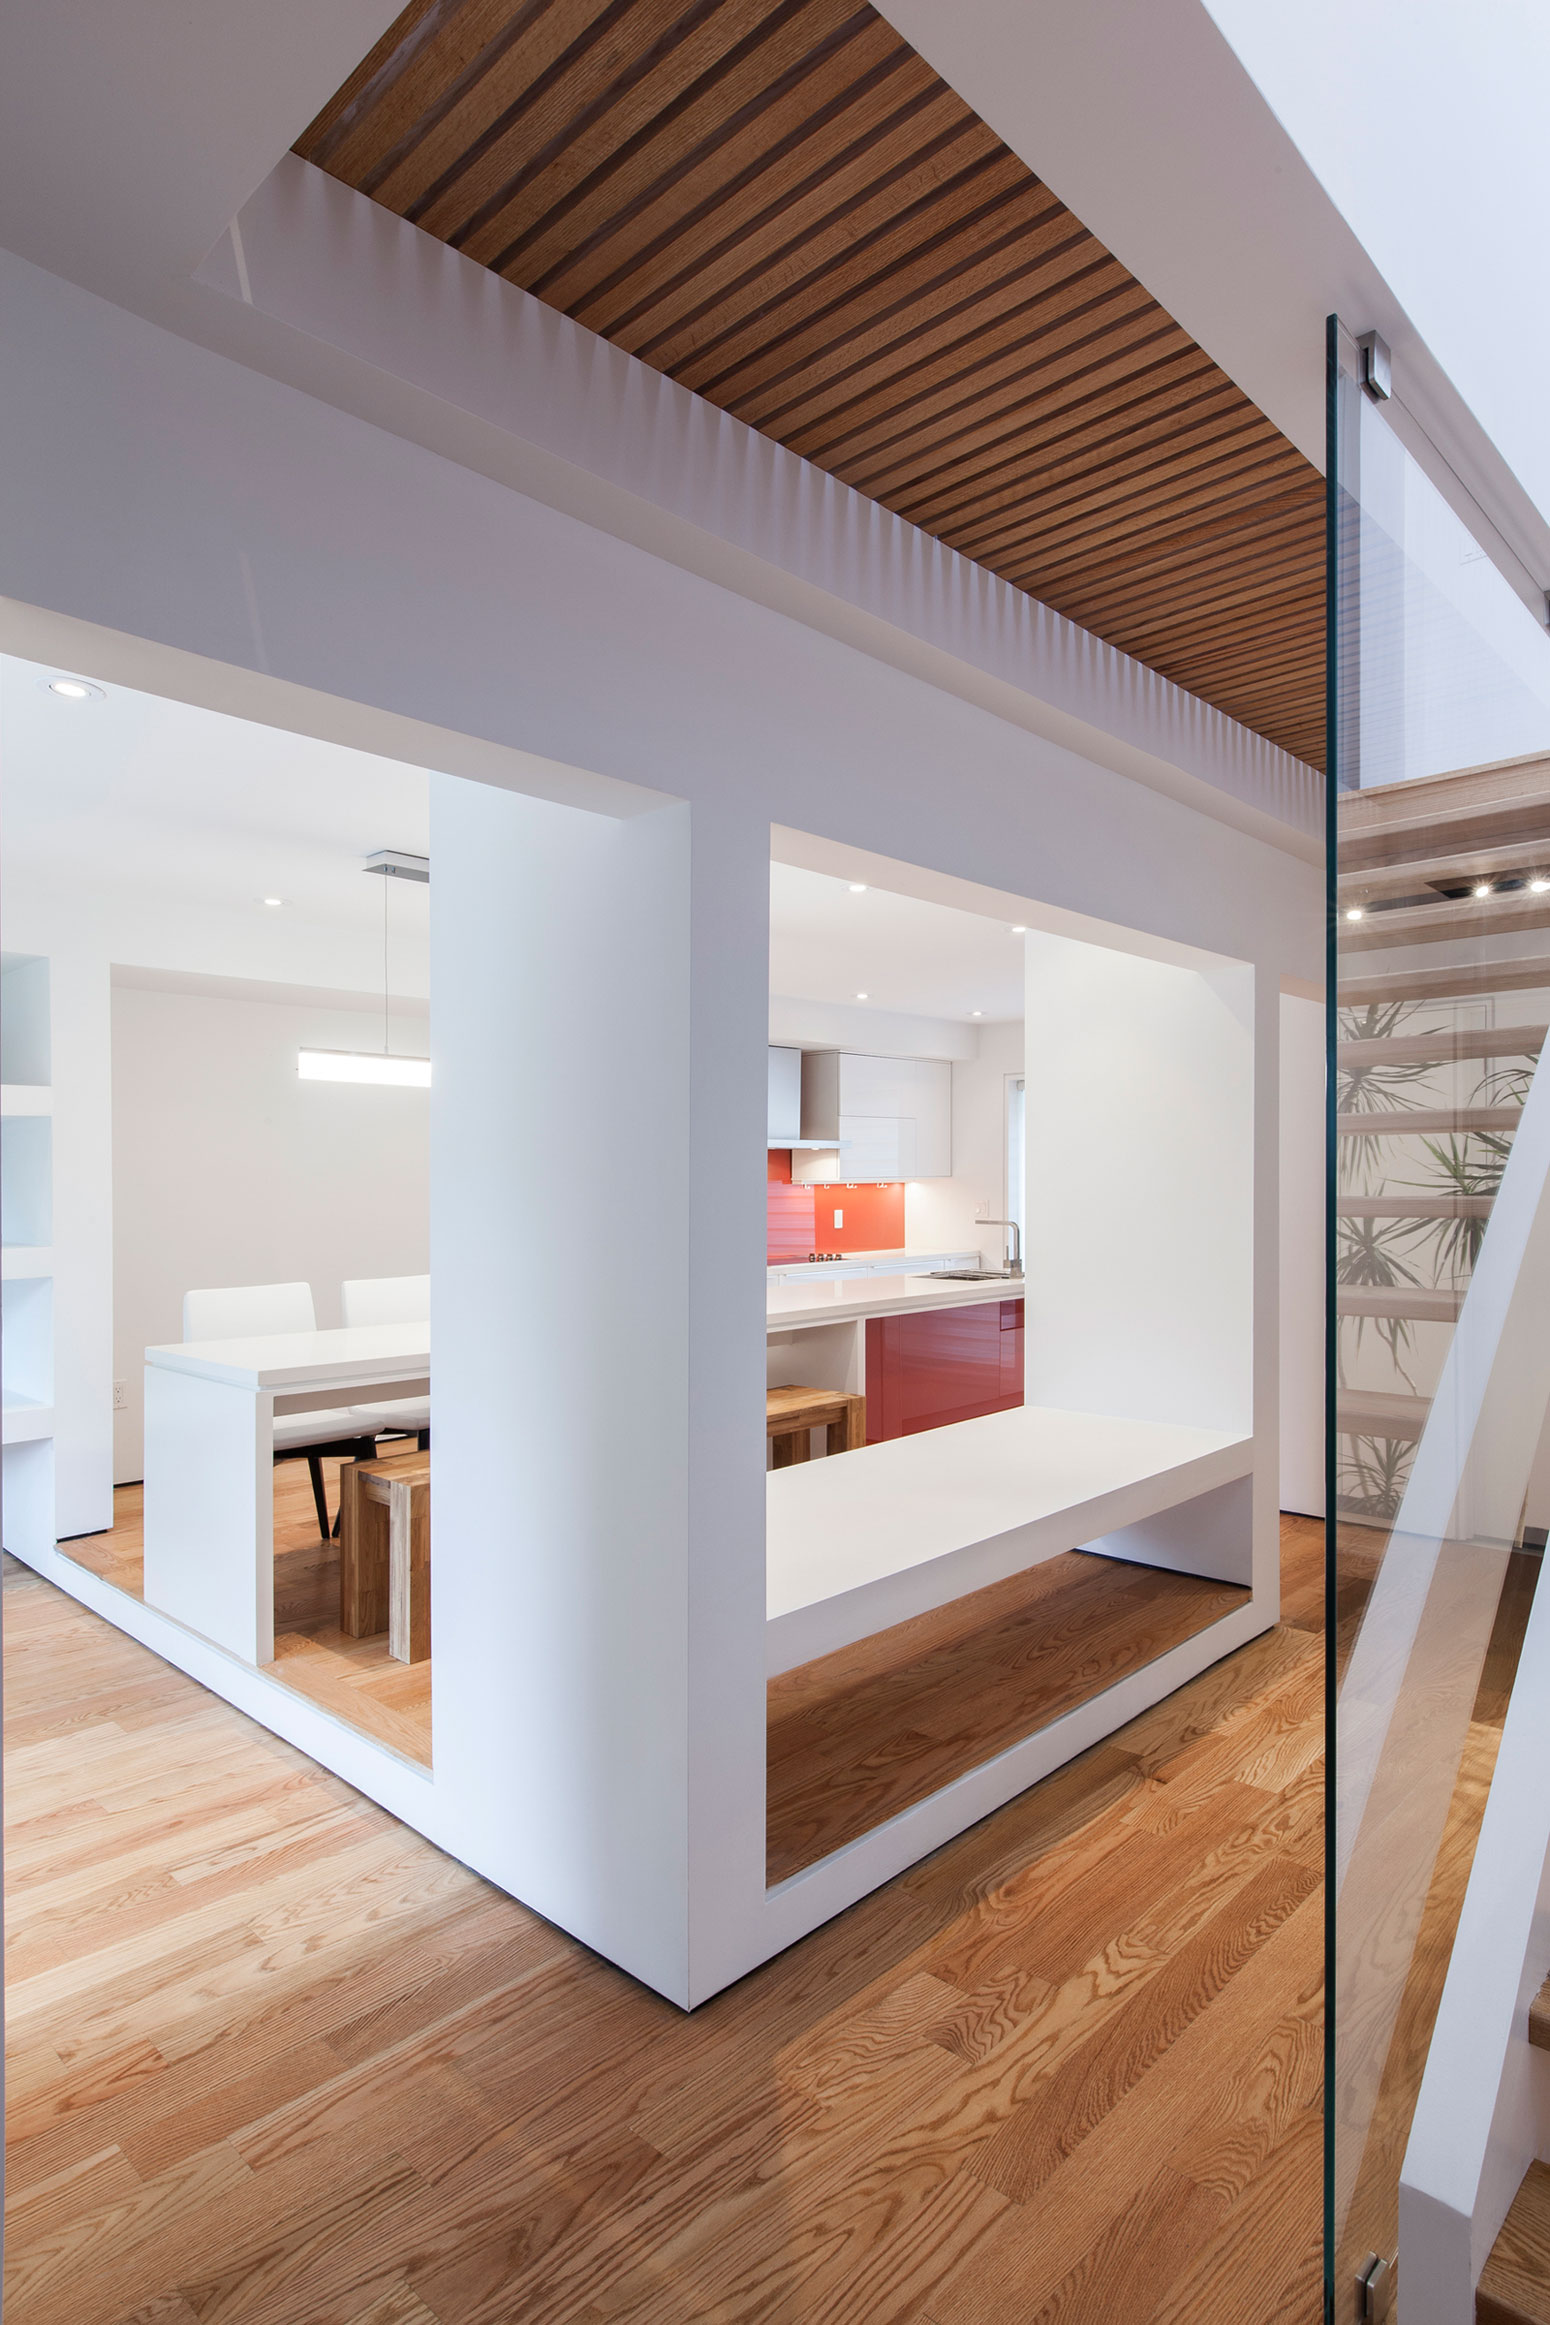 Thorax House, a Minimalist Two-Storey Wood Structure Home by RZLBD-04